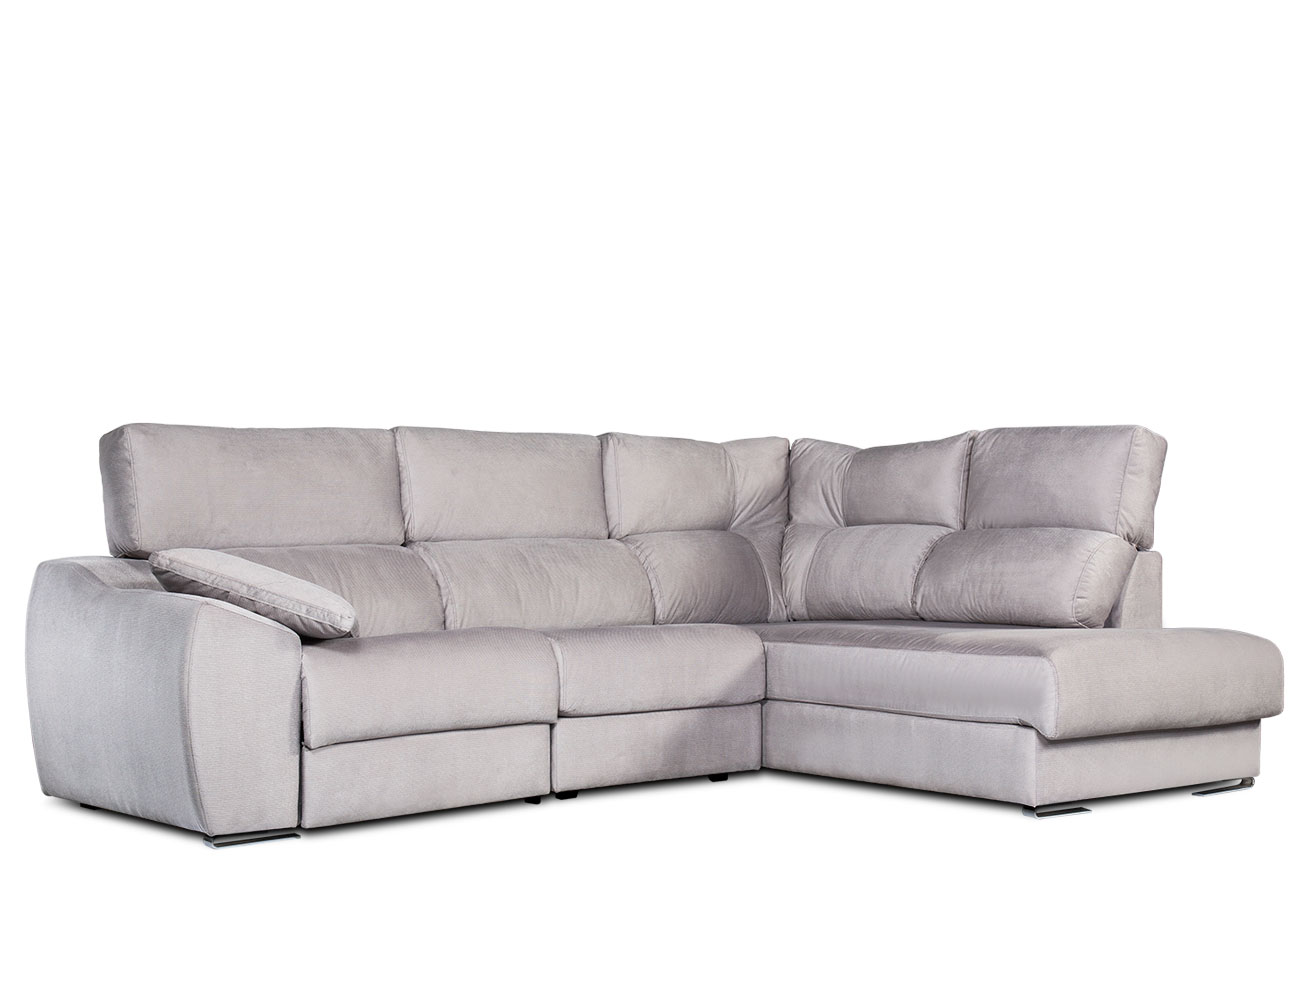 Sofa chaiselongue rincon electrico7